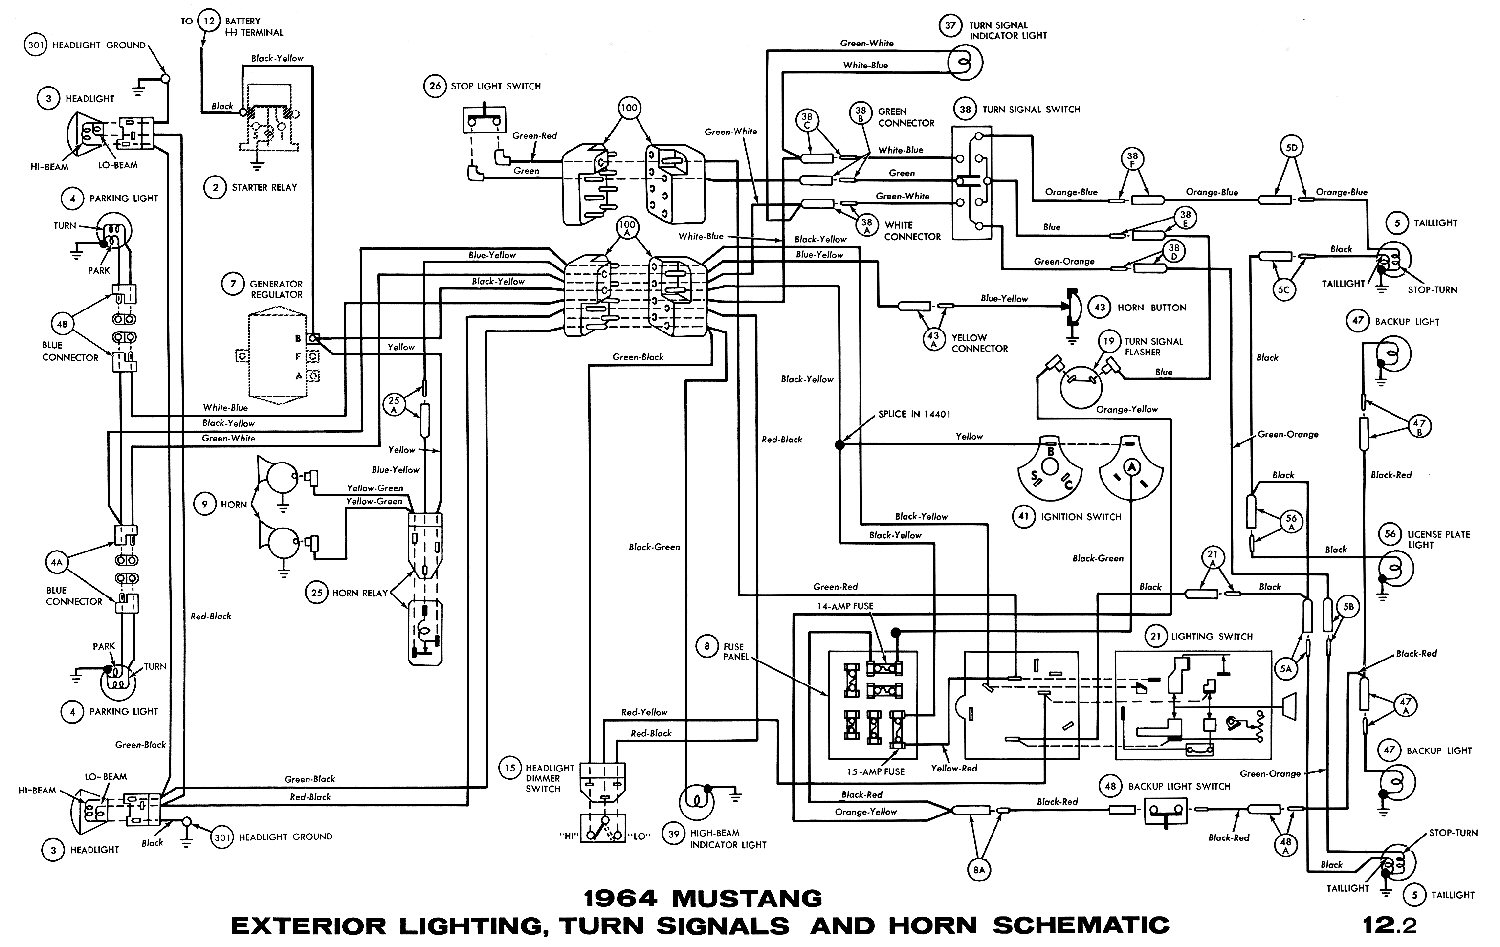 1964i 1964 mustang wiring diagrams average joe restoration 65 mustang turn signal switch wiring diagram at panicattacktreatment.co